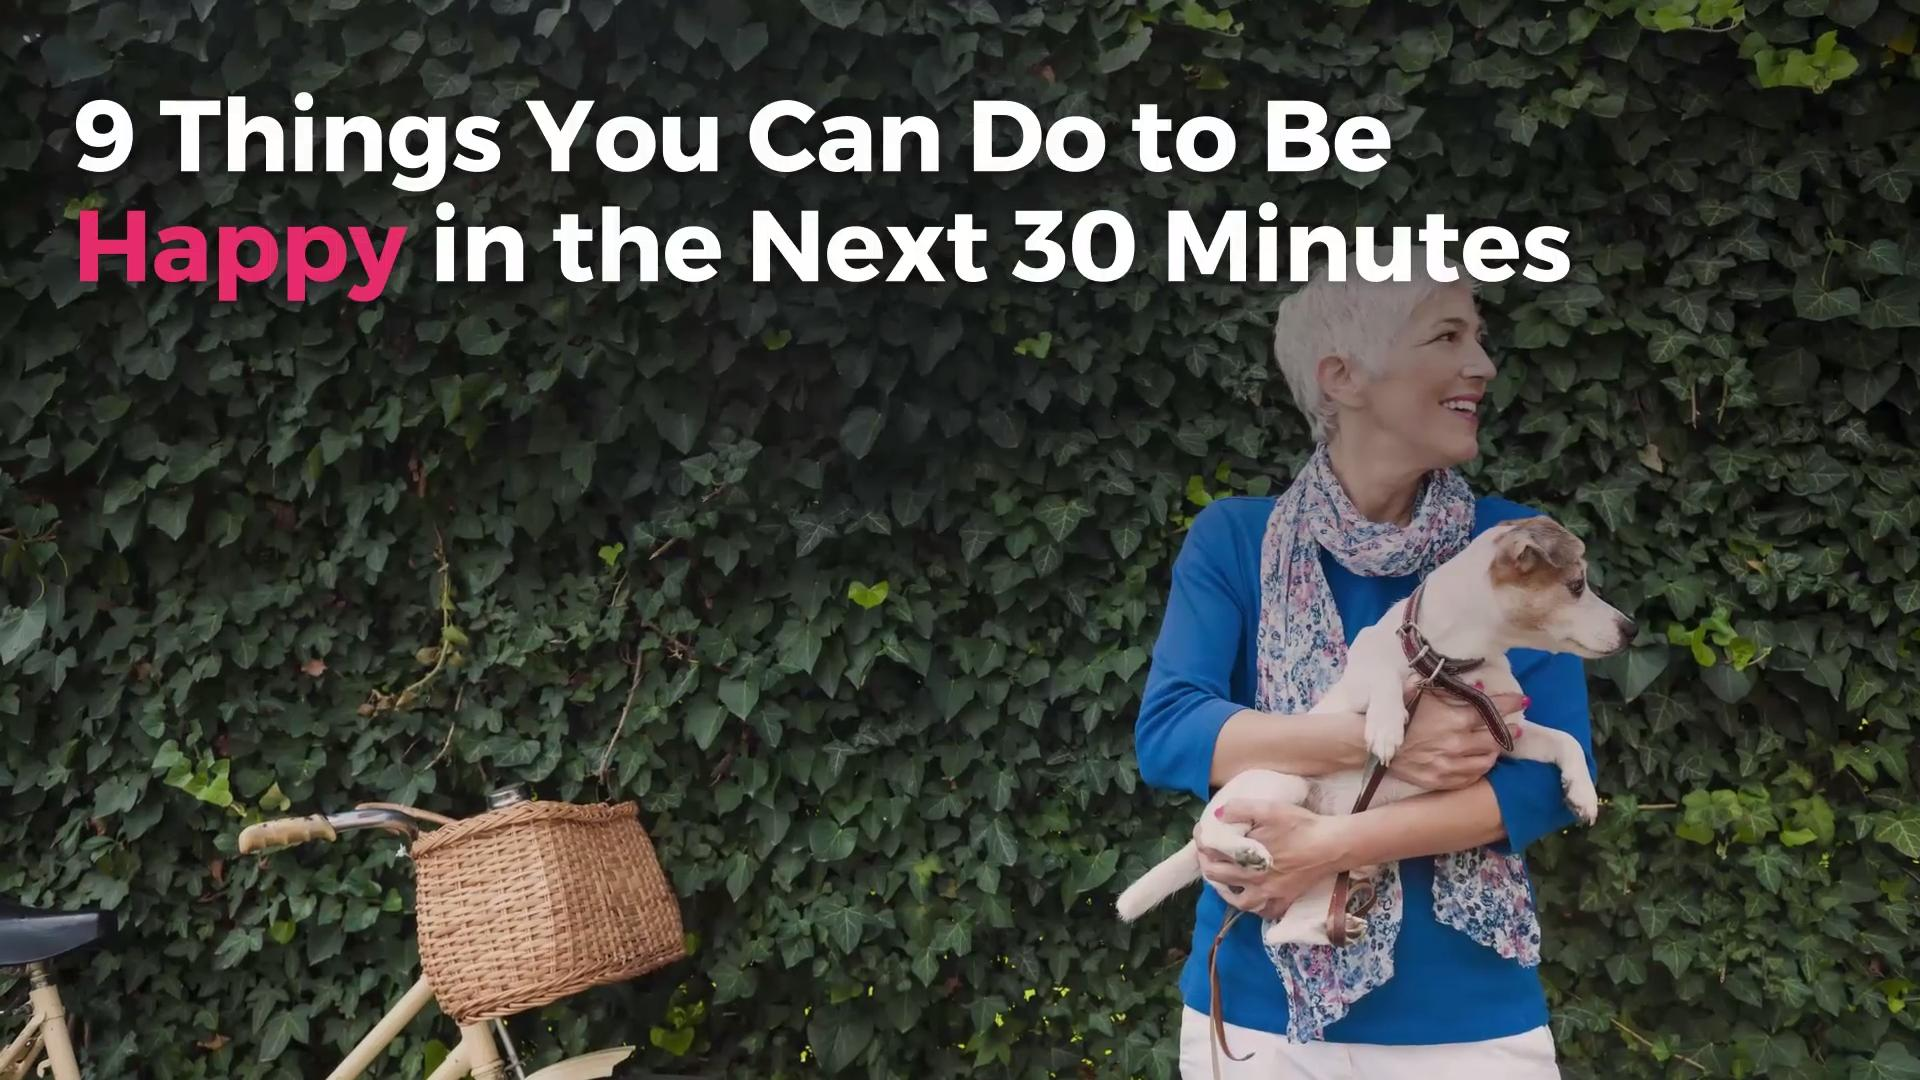 9 Things You Can Do to Be Happy in the Next 30 Minutes